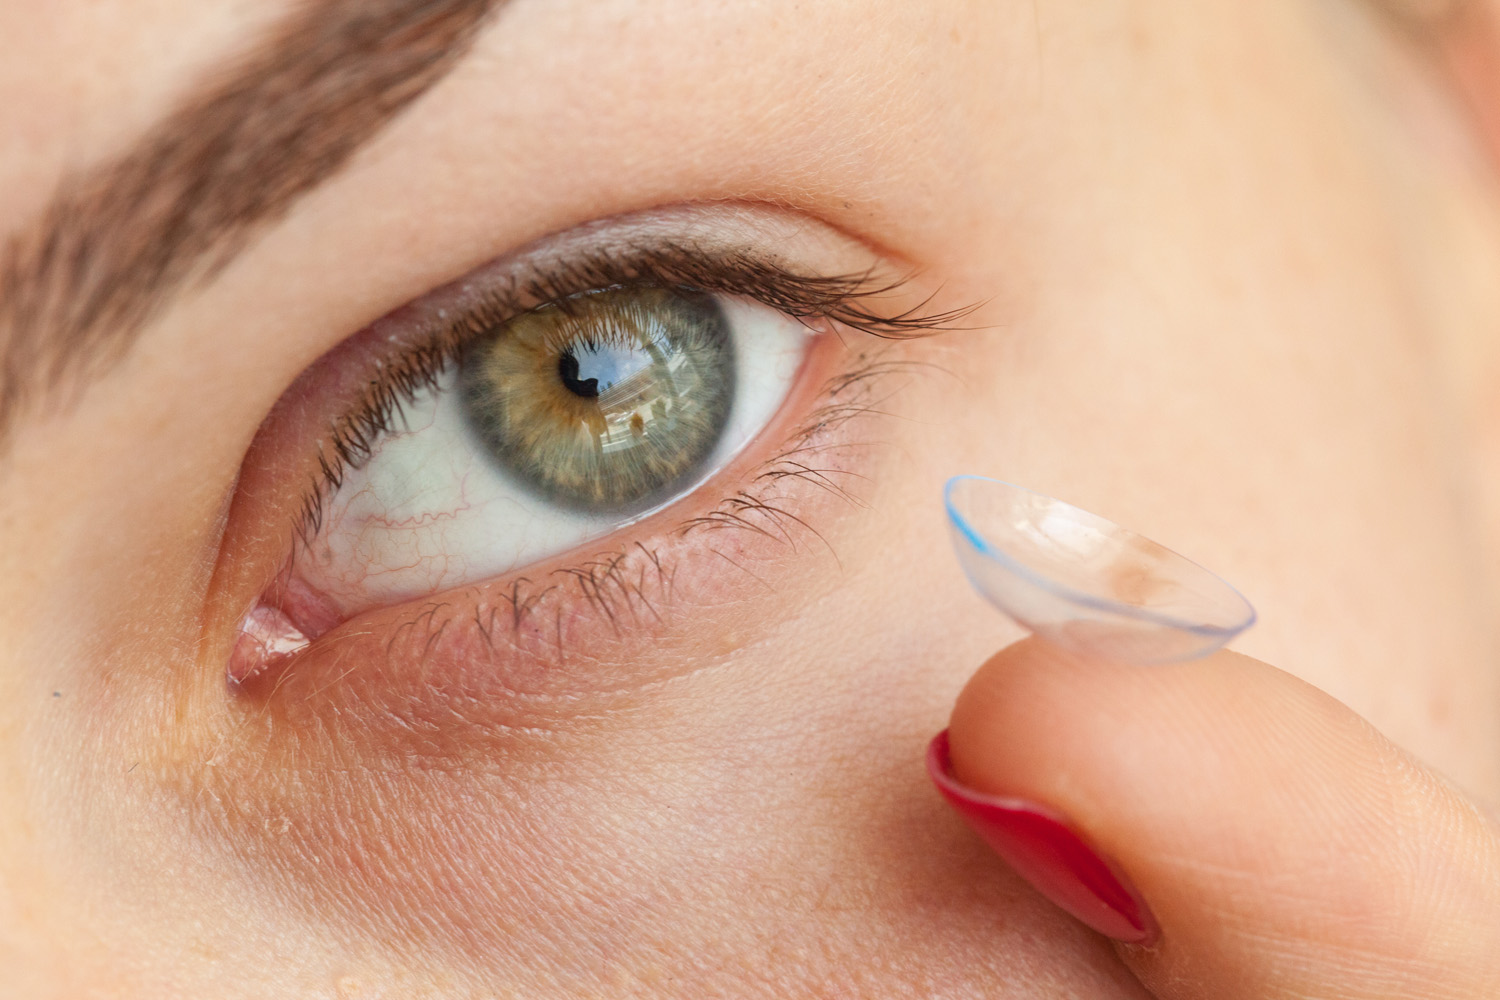 Contact lens service - Our goal is to help you find the most comfortable wearing experience possible.